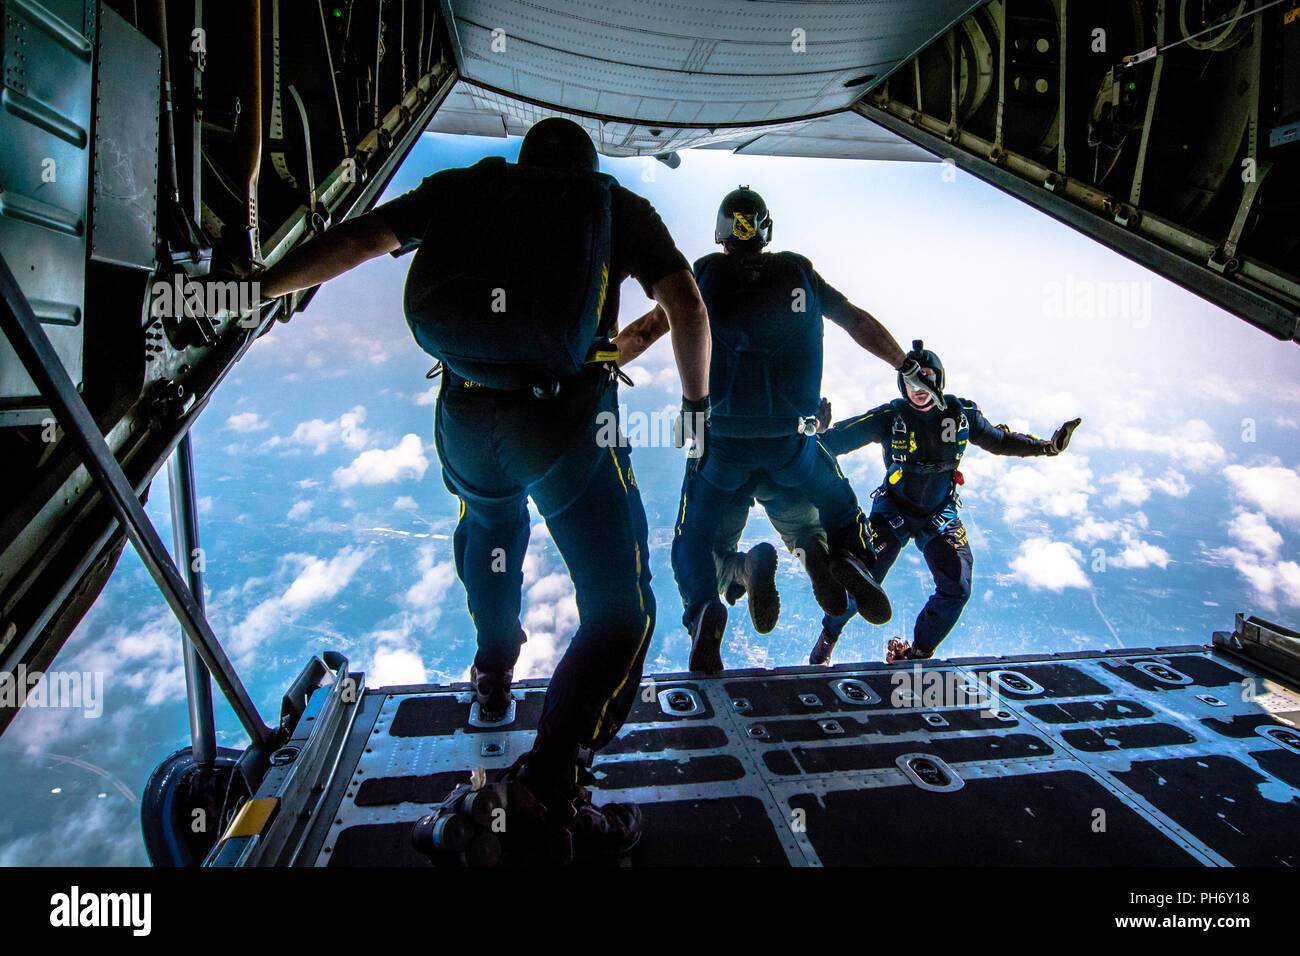 The U.S. Navy Leap Frogs jump from a C-130 Hercules aircraft during the Sound of Speed Air Show and Open House above Rosecrans Air National Guard Base, St. Joseph, Mo., August 24, 2018. The air show was hosted by the 139th Airlift Wing and city of St. Joseph to thank the community for their support. The air show committee estimated around 70,000 people attended during the weekend performances. (U.S. Air National Guard photo by Staff Sgt. Patrick Evenson) - Stock Image